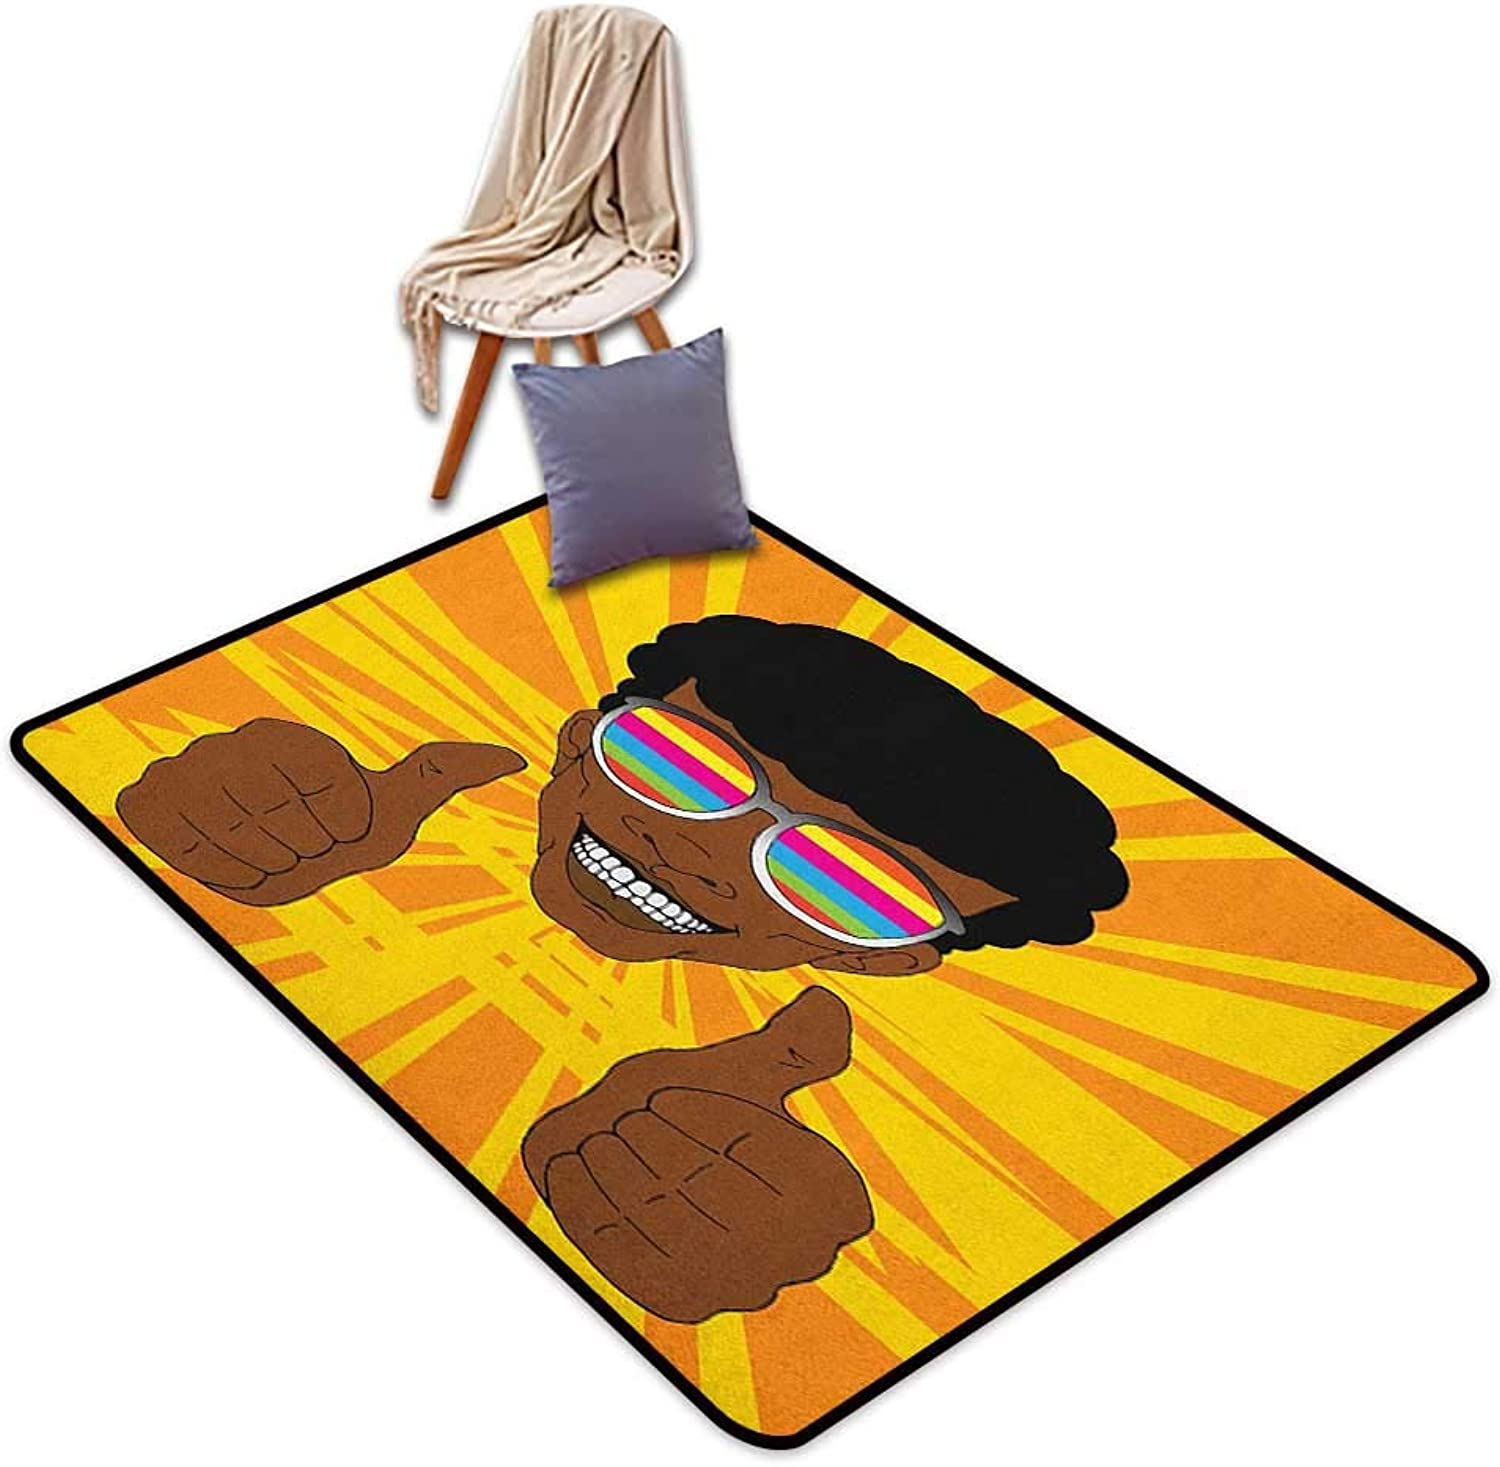 Room Bedroom Floor Rug Afro Happy Hippie Man with colorful Sunglasses Lifting His Thumbs Retro Positive Vibes Door Rug Increase W5'xL7'